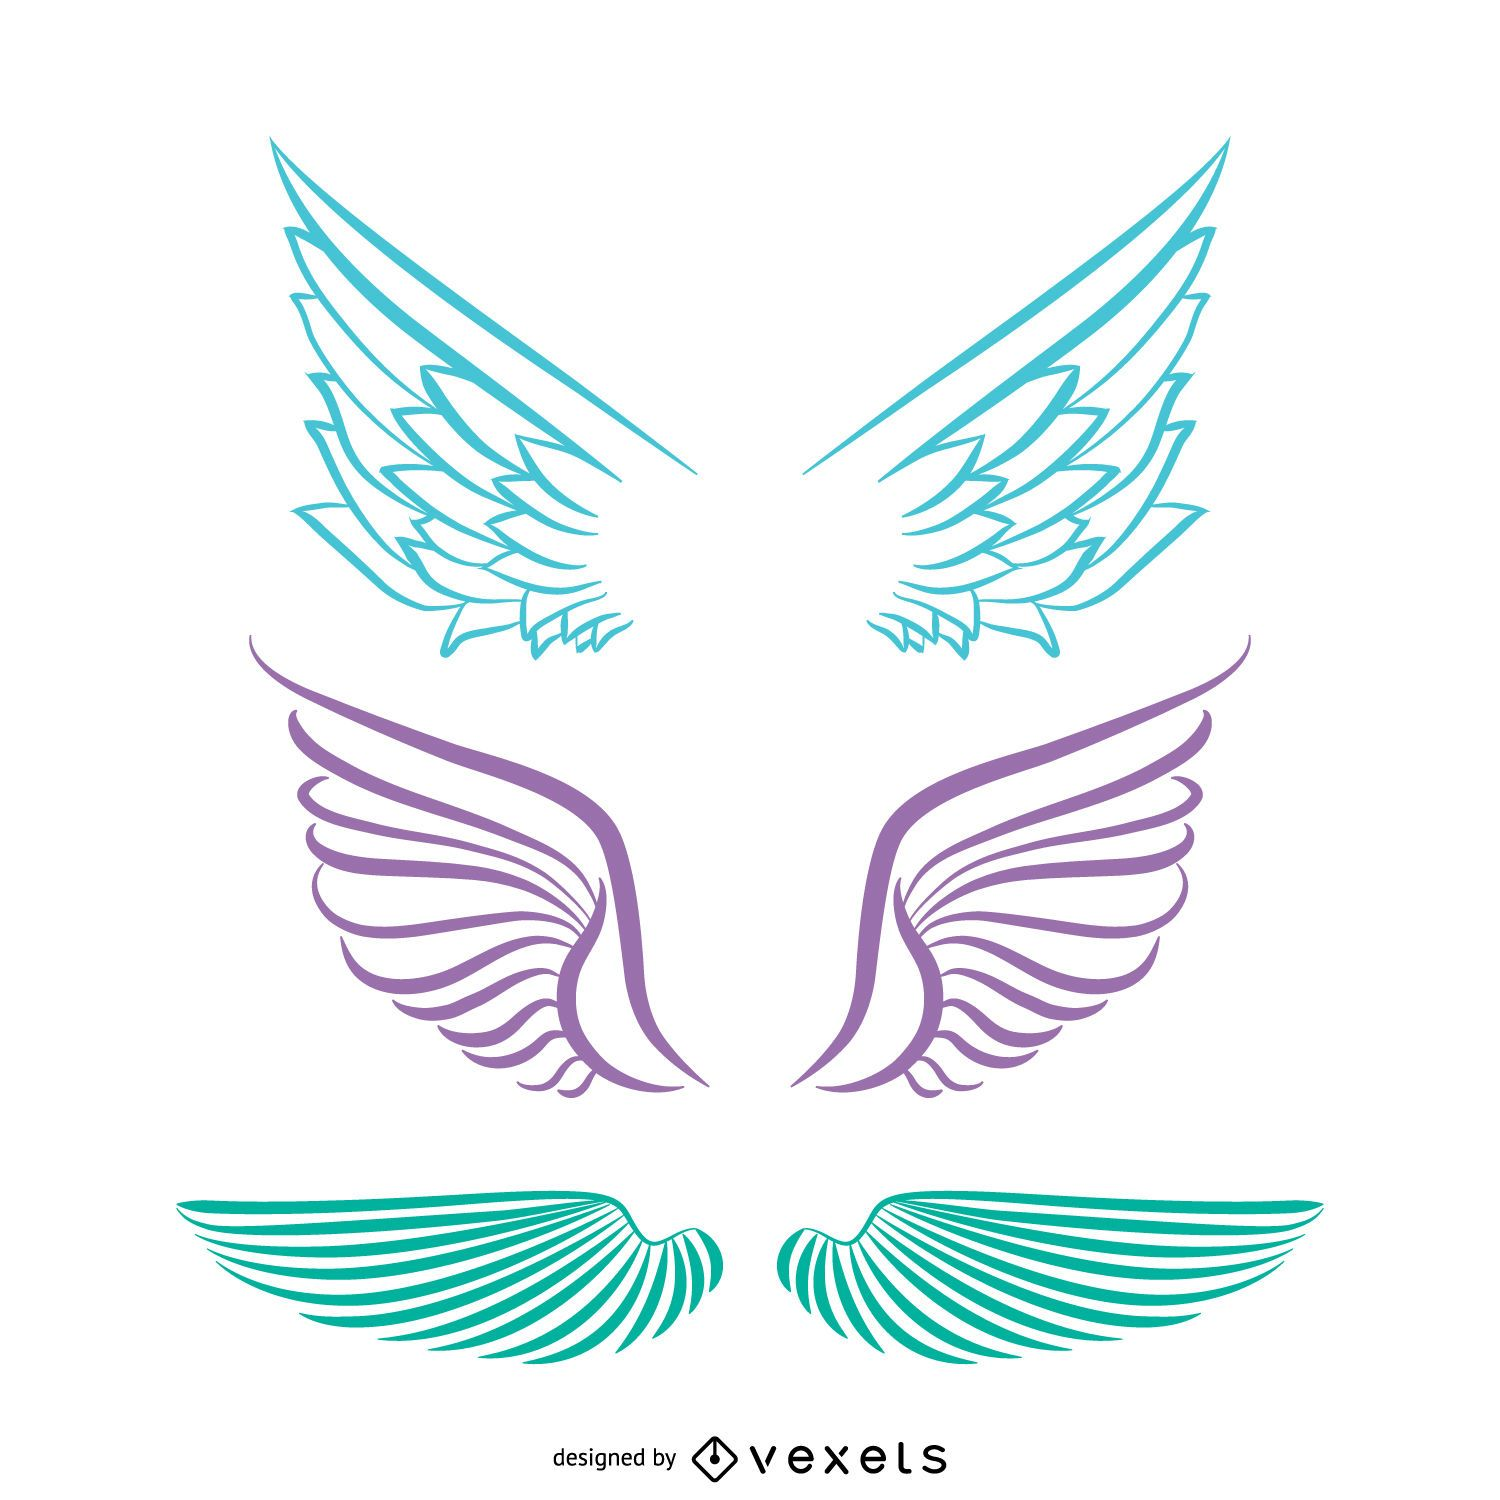 Isolated angel wings drawings